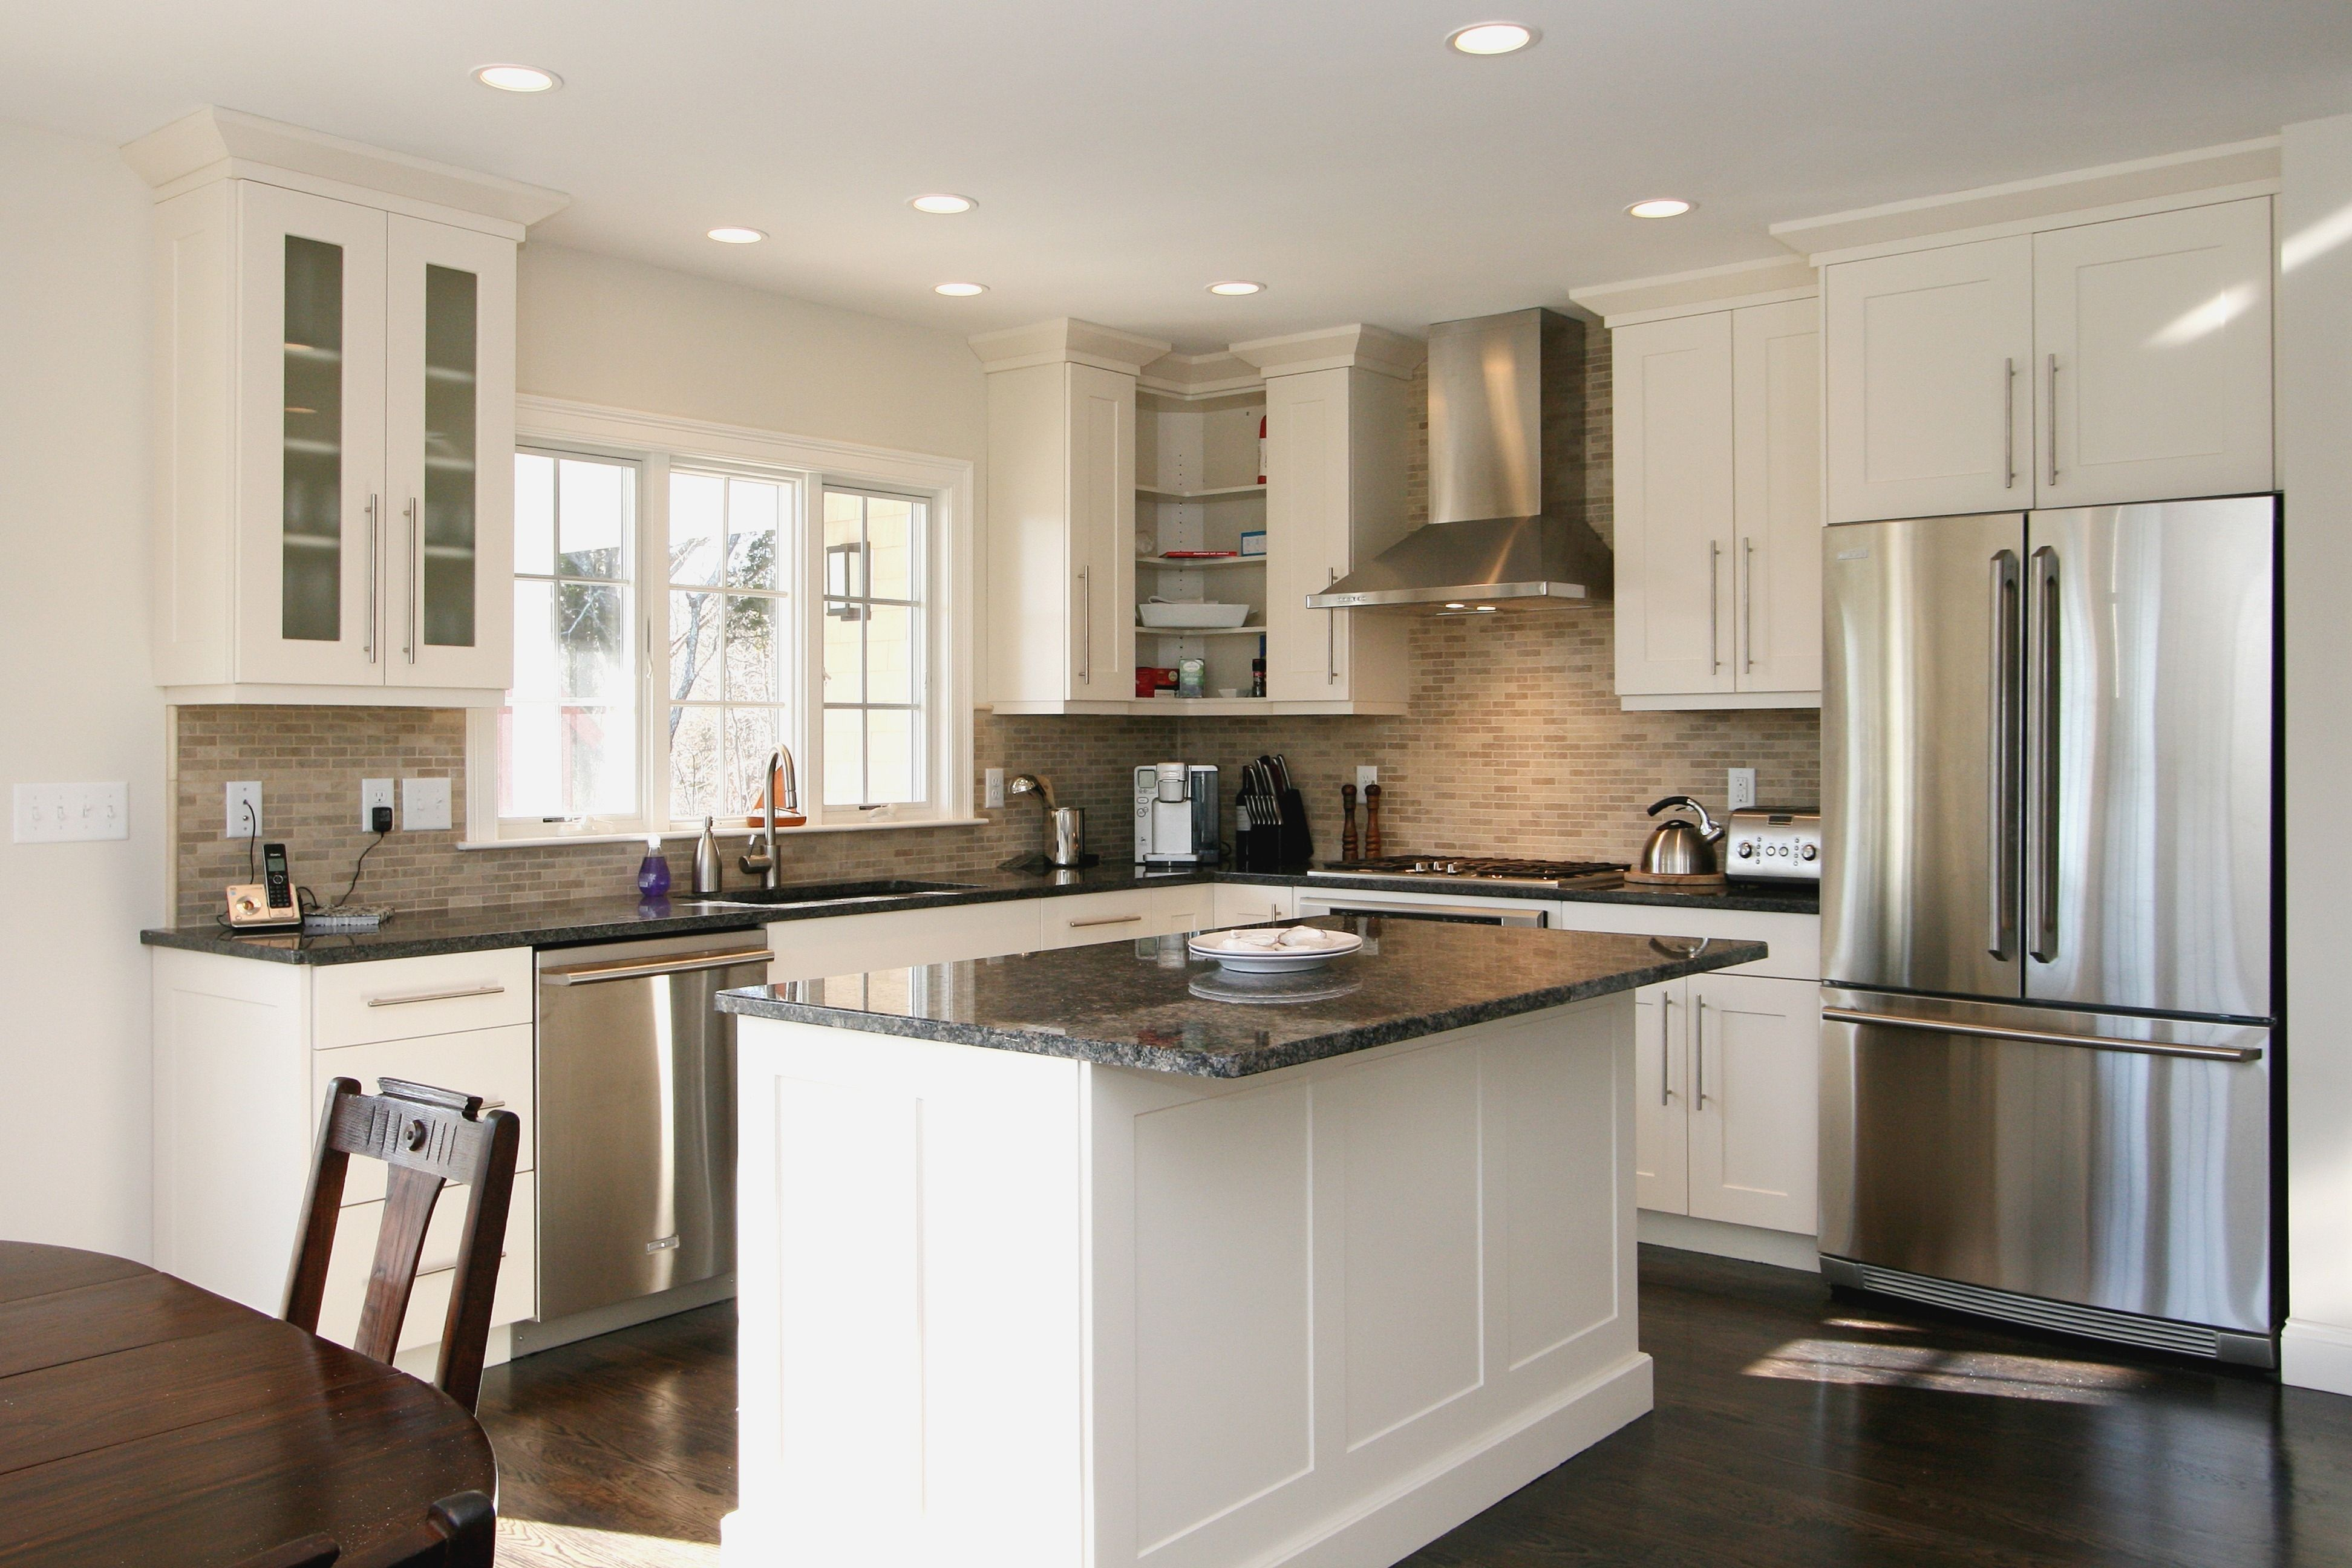 Find Cool LShaped Kitchen Design for Your Home Now